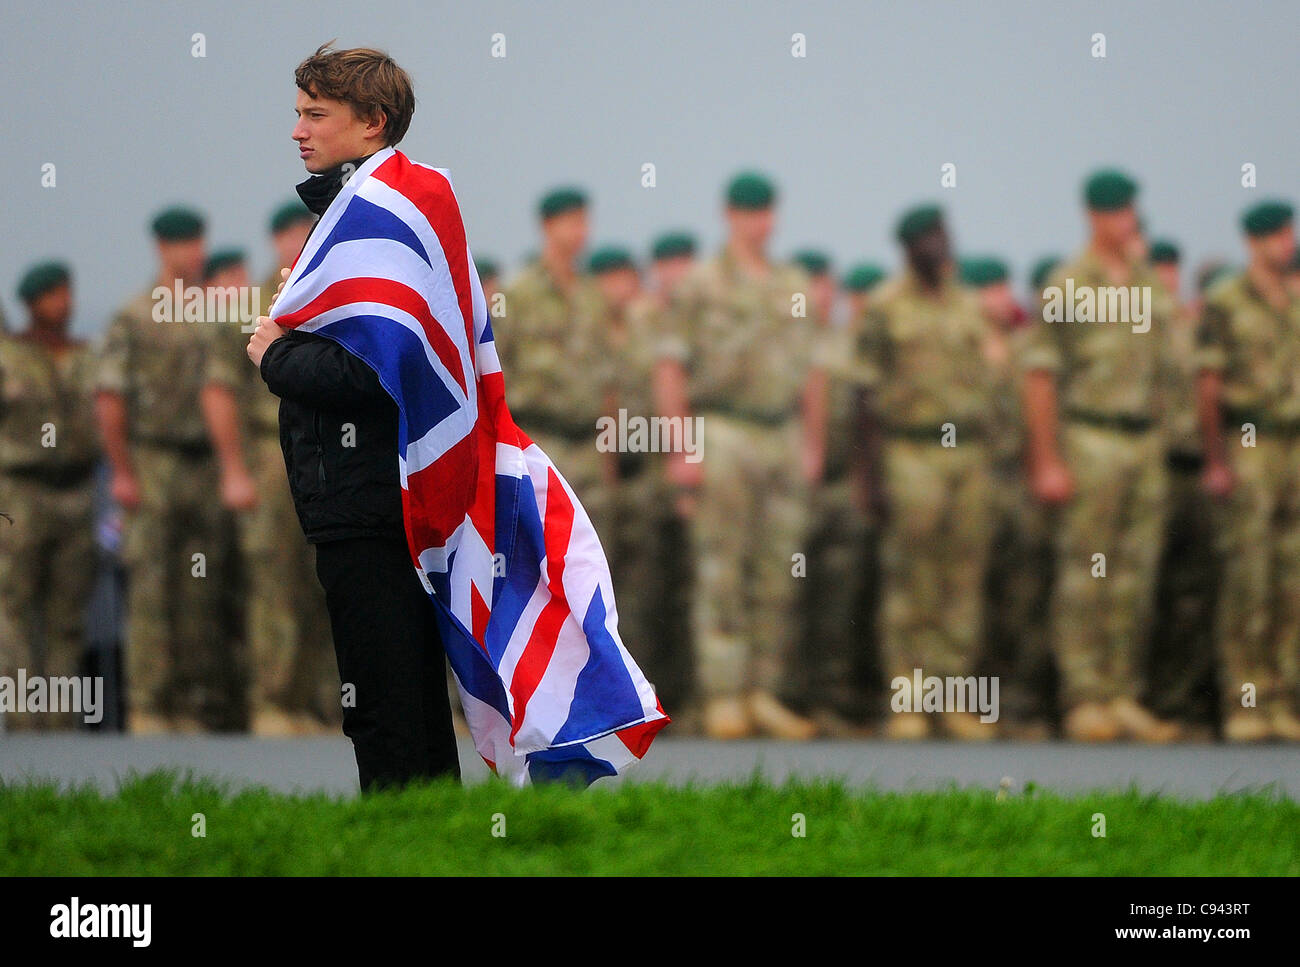 11.11.11. Royal Marine Commandos take part in the Remembrance Service to mark Armistice Day on Plymouth Hoe in Devon. - Stock Image